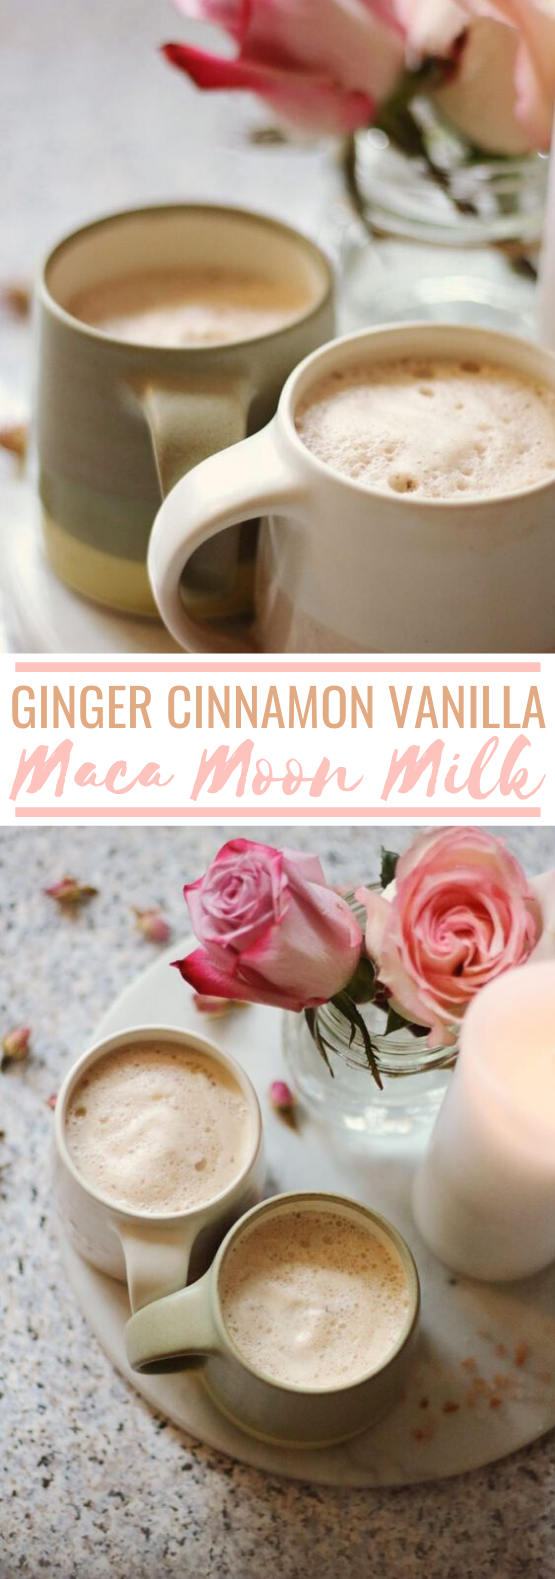 Ginger Cinnamon Vanilla & Maca Moon Milk #healthy #drinks #milk #latte #hot